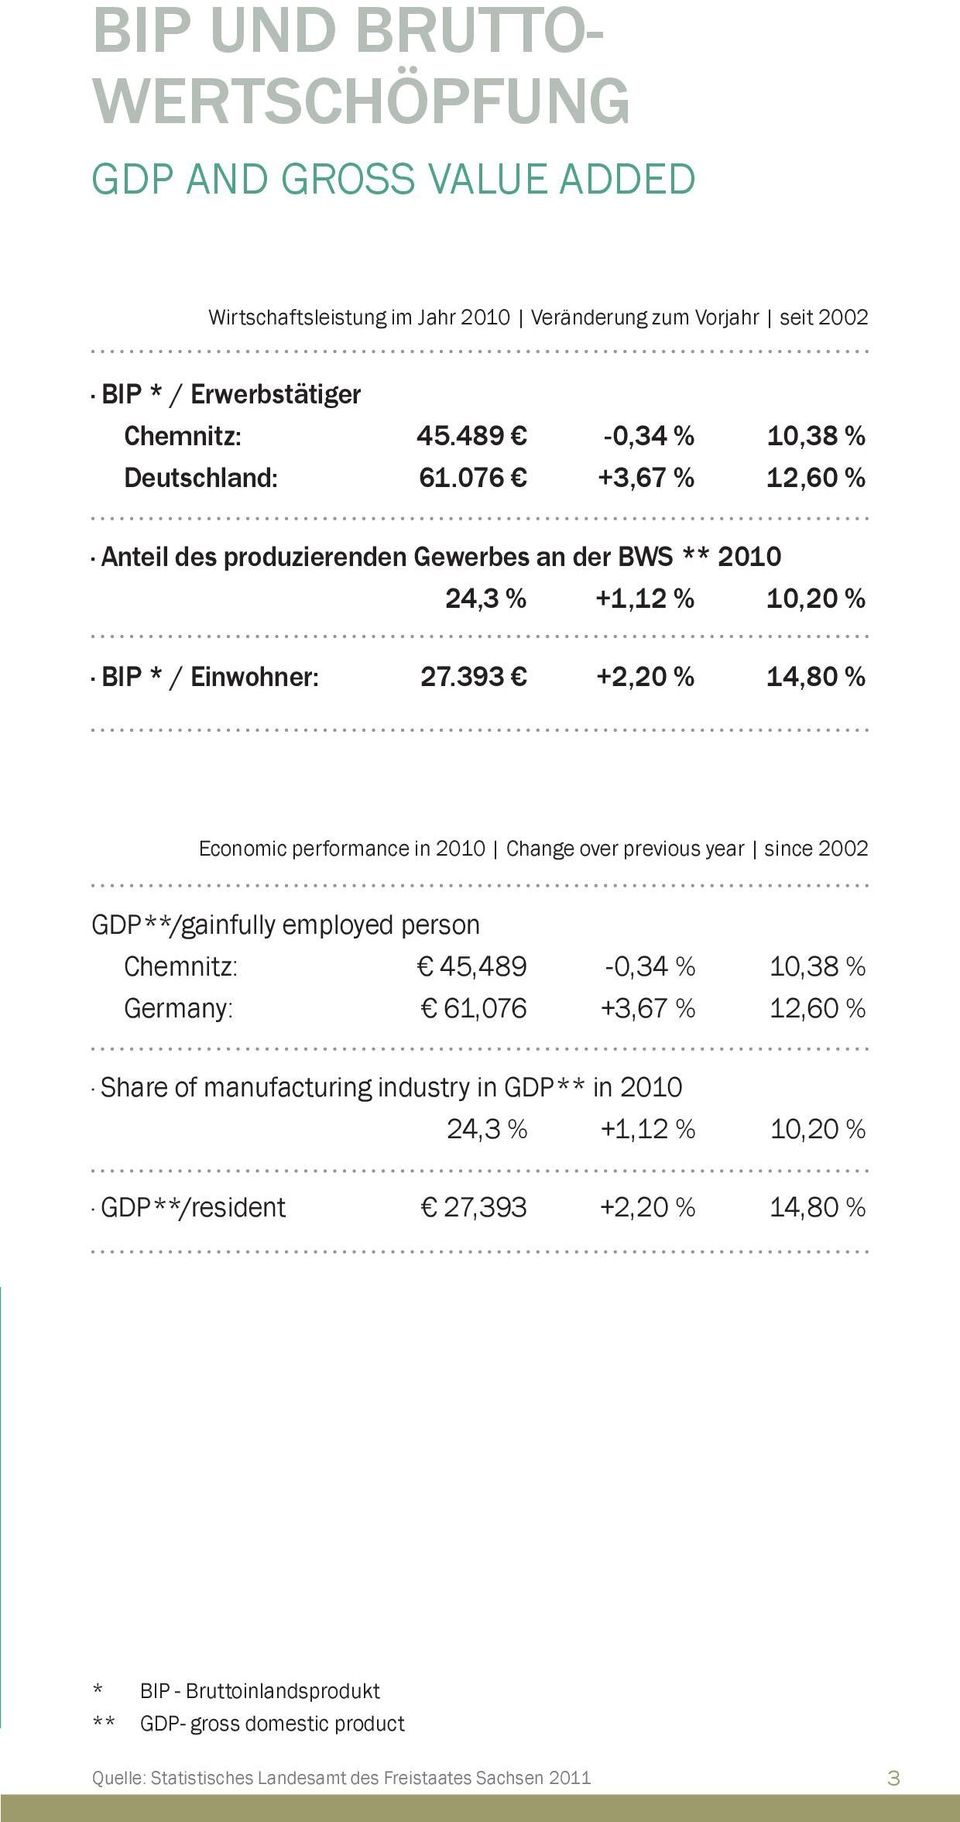 393 +2,20 % 14,80 % Economic performance in 2010 Change over previous year since 2002 GDP**/gainfully employed person Chemnitz: 45,489-0,34 % 10,38 % Germany: 61,076 +3,67 % 12,60 %